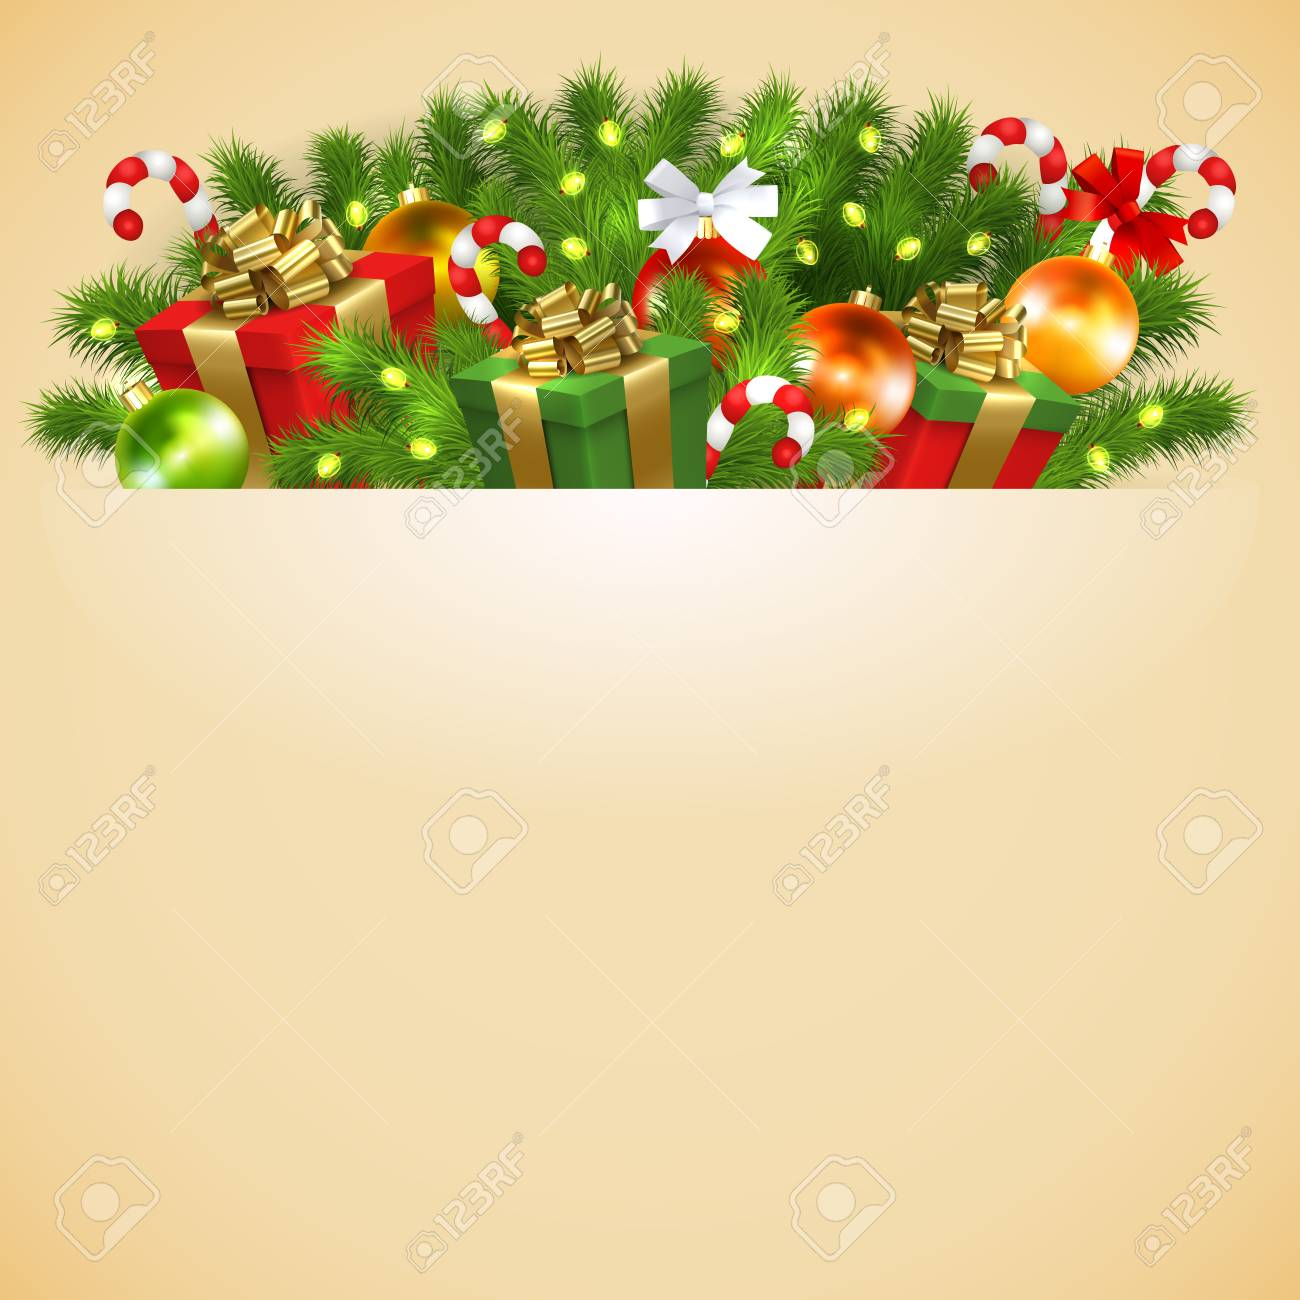 Christmas Card With Gift Boxes With Gold Ribbon Bow Garland Royalty Free Cliparts Vectors And Stock Illustration Image 90746591